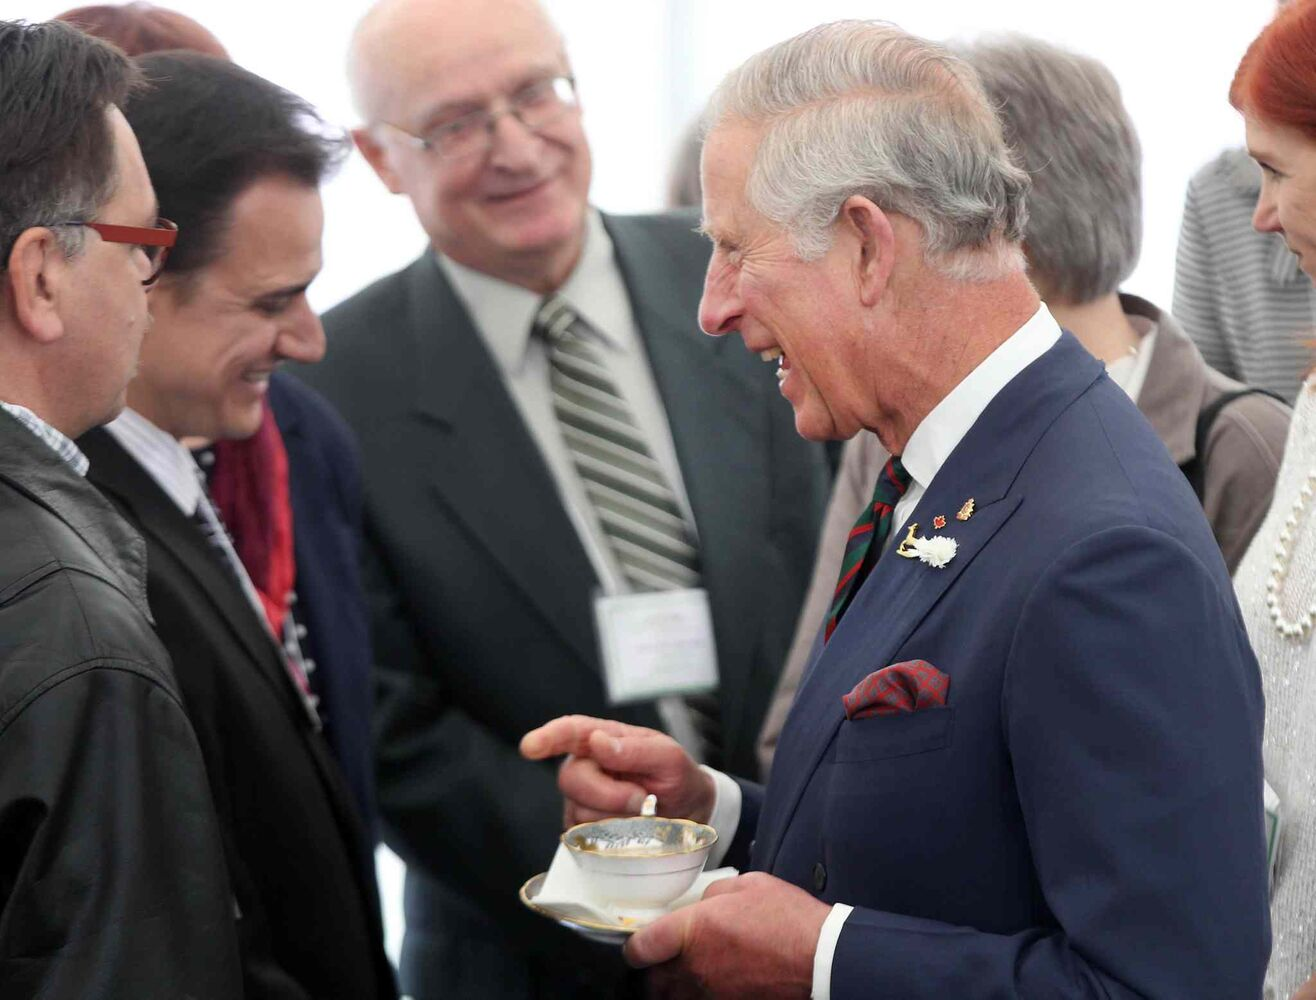 Prince Charles meets residents of Place Bernadette Poirer . (JOE BRYKSA / WINNIPEG FREE PRESS)